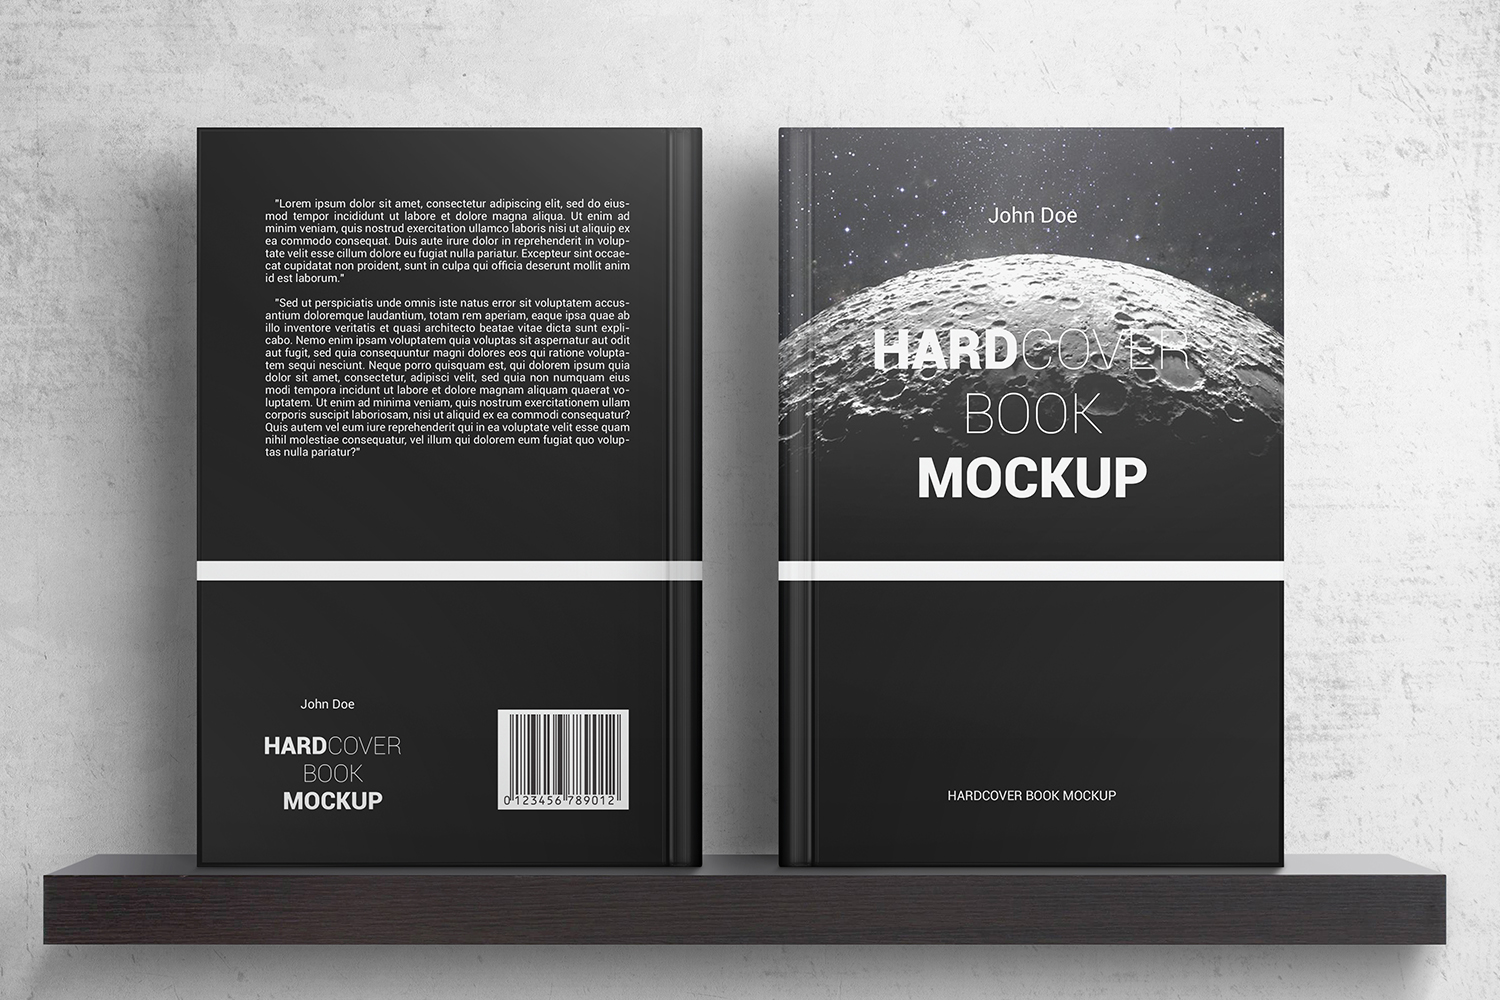 Hardcover Book Mockups example image 2